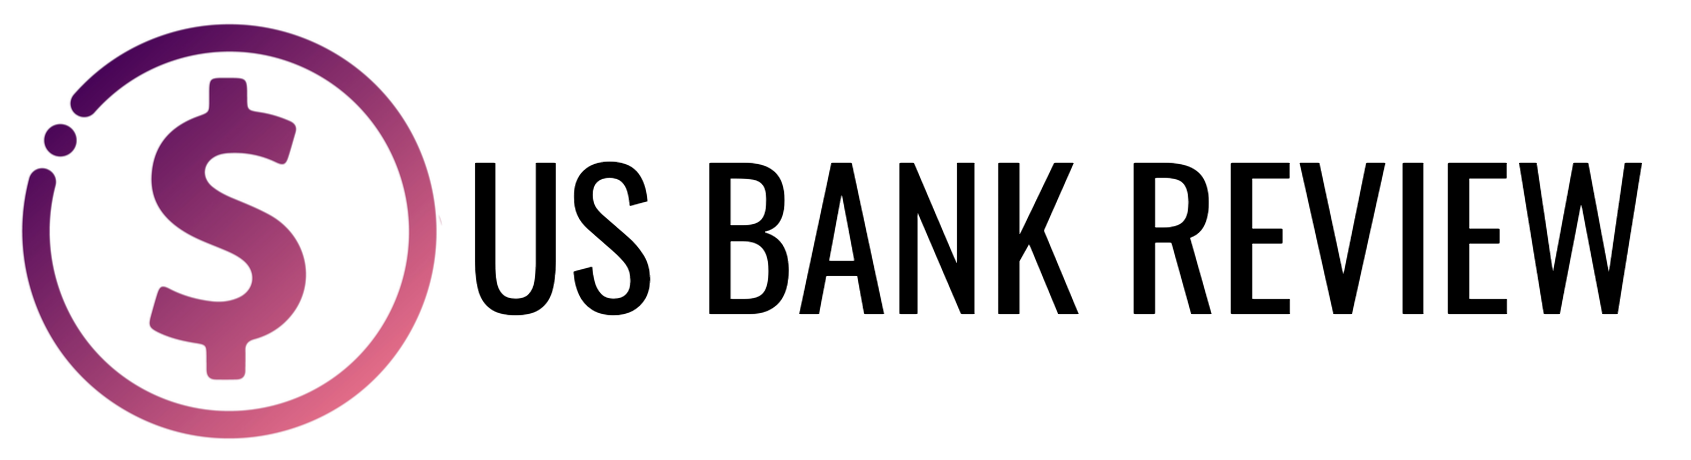 THE US BANK REVIEW – The Definitive Bank Rankings and Reviews